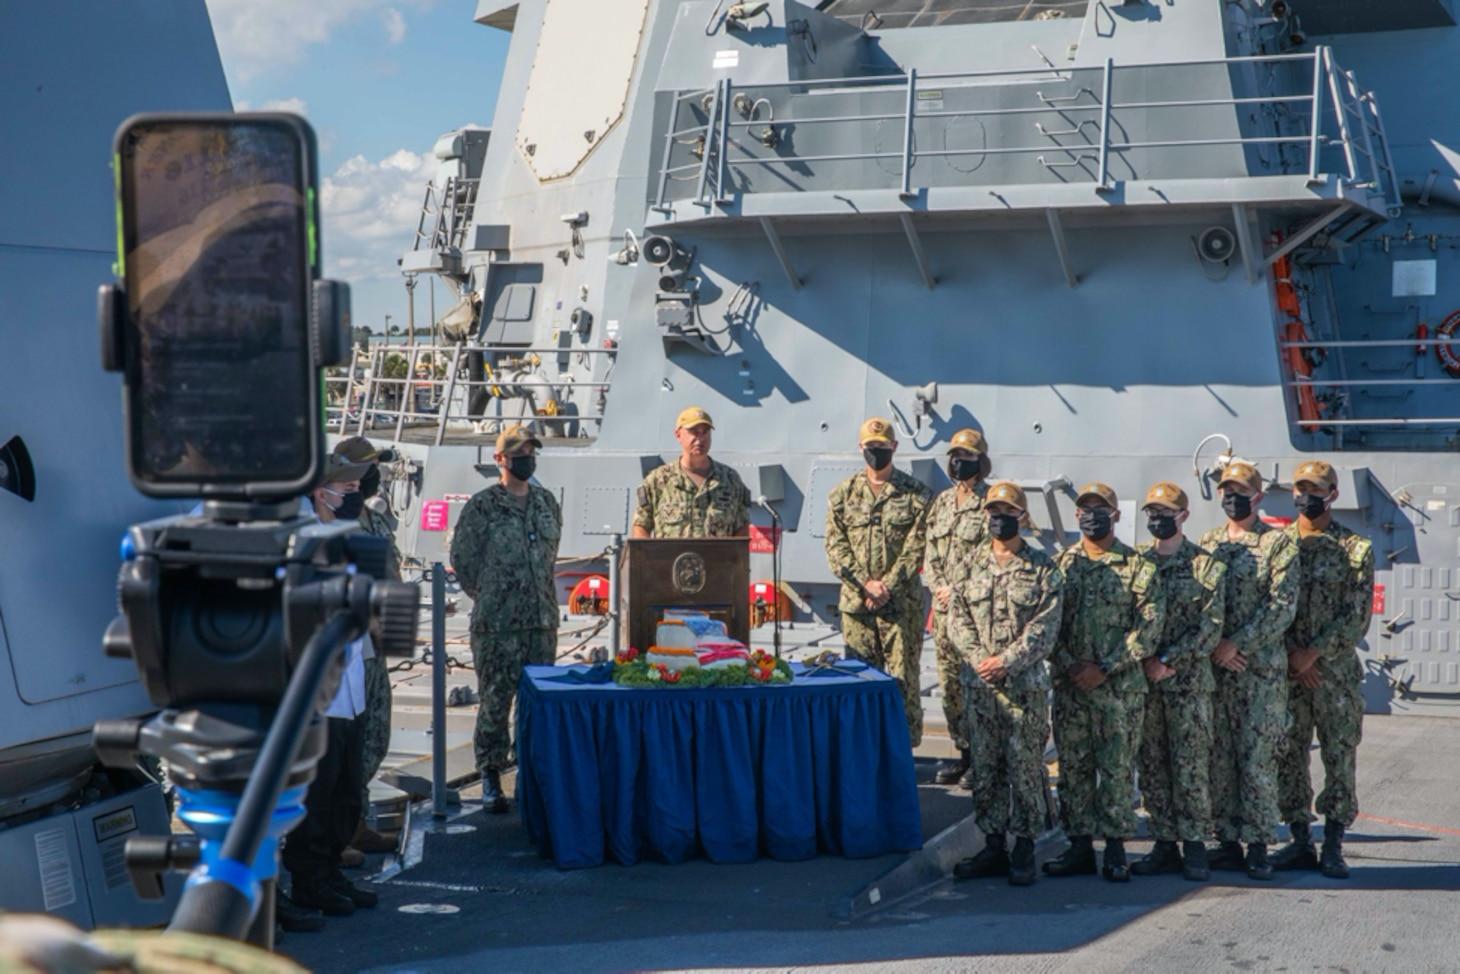 Rear Adm. Brendan McLane, commander, Naval Surface Force Atlantic, introduces the Task Group Greyhound (TGG) Initiative during a livestream aboard the guided-missile destroyer USS Thomas Hudner (DDG 116). TGG is a force generation initiative, inside the Optimized Fleet Response Plan (OFRP) construct, designed to provide the Fleet with predictable, continuously ready, and fully certified warships ready to accomplish the full range of fleet tasking. (U.S. Navy photo by Mass Communication Specialist 3rd Class Aaron Lau/Released)